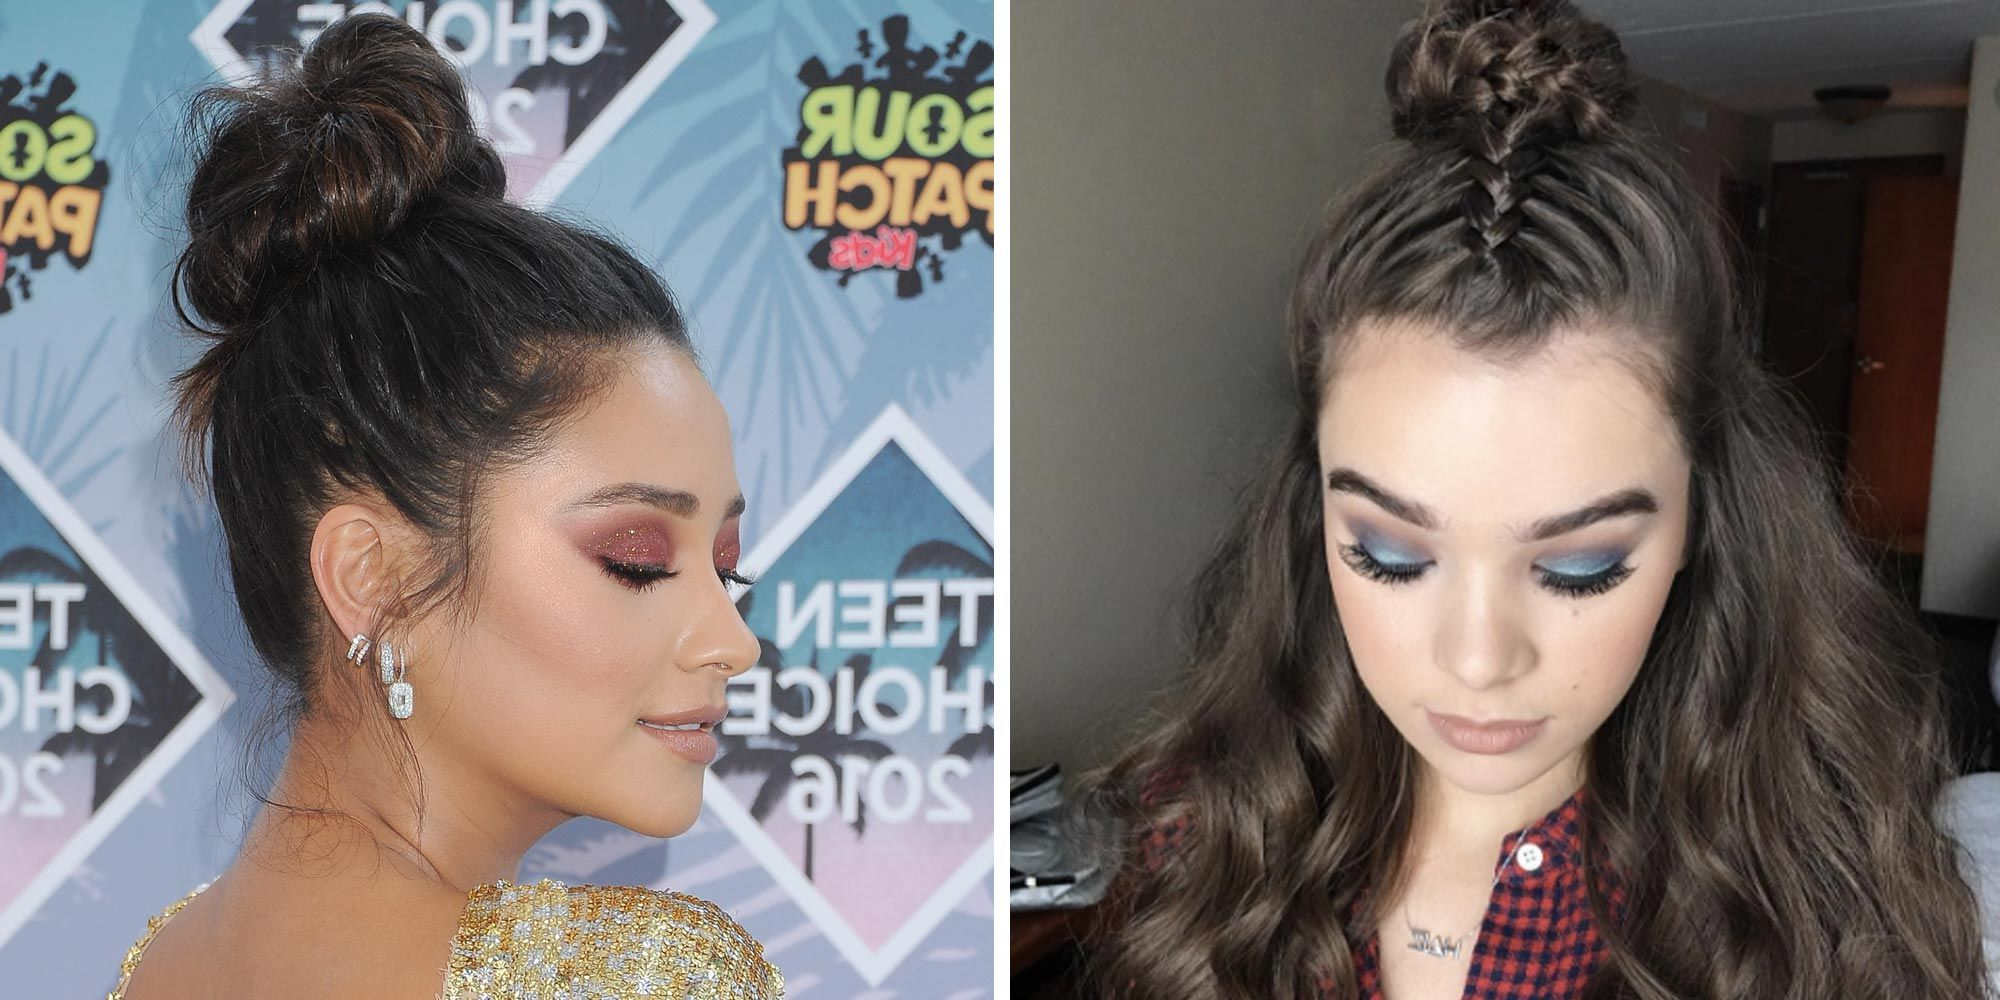 7 Photos Of Embellished Braided Buns – Braided Top Knot Hair Within Latest Hoop Embellished Braids Hairstyles (Gallery 12 of 20)